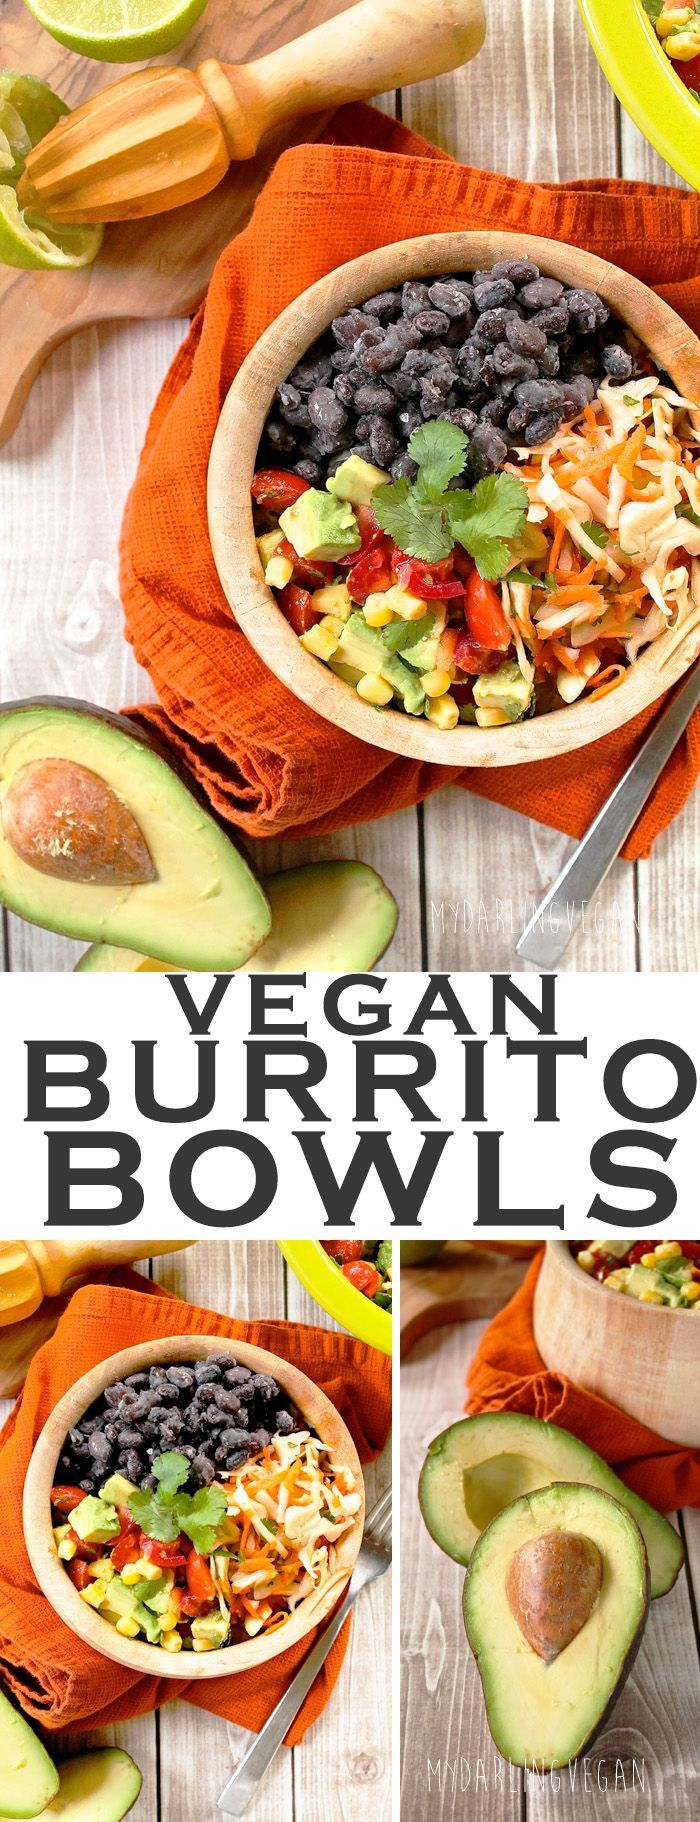 Dig into this vegan Burrito Bowl with avocado corn salsa and carrot cilantro slaw. Click the photo for the full recipe.